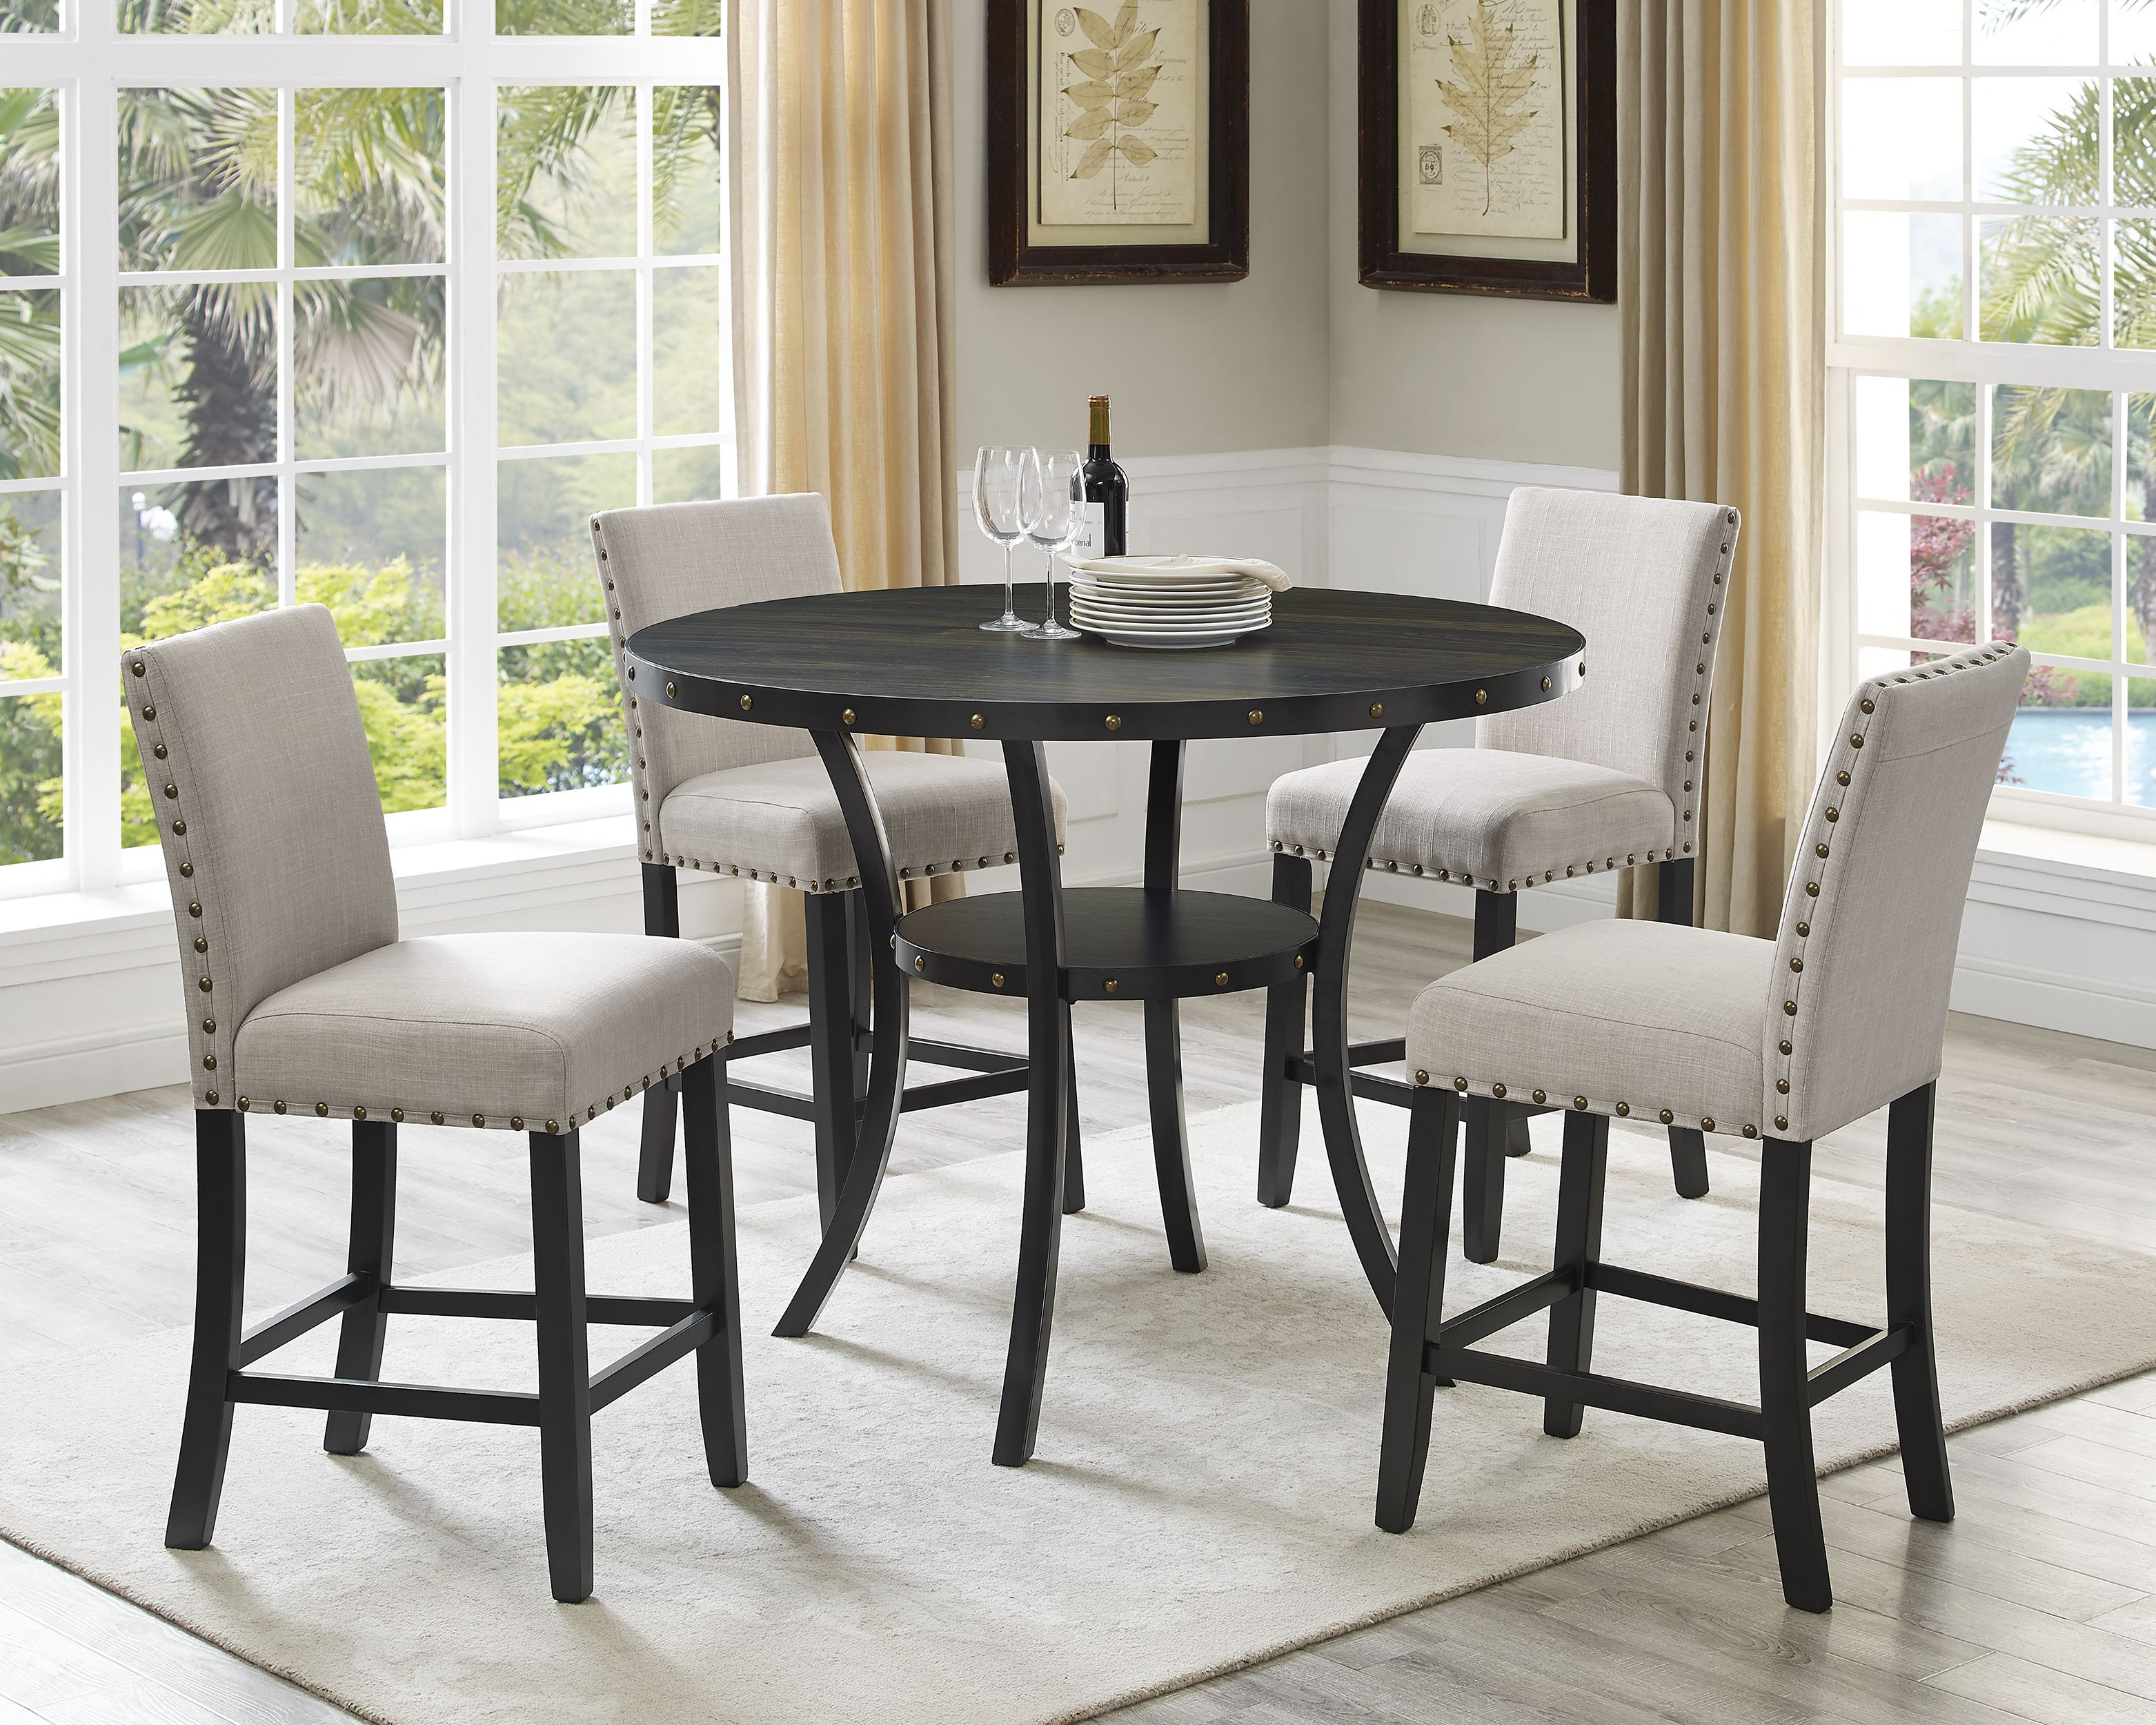 Indira 5 Piece Pub Set Table 4 Stools Beige Walmart Com Dining Room Sets Pub Table Sets Dining Table Setting